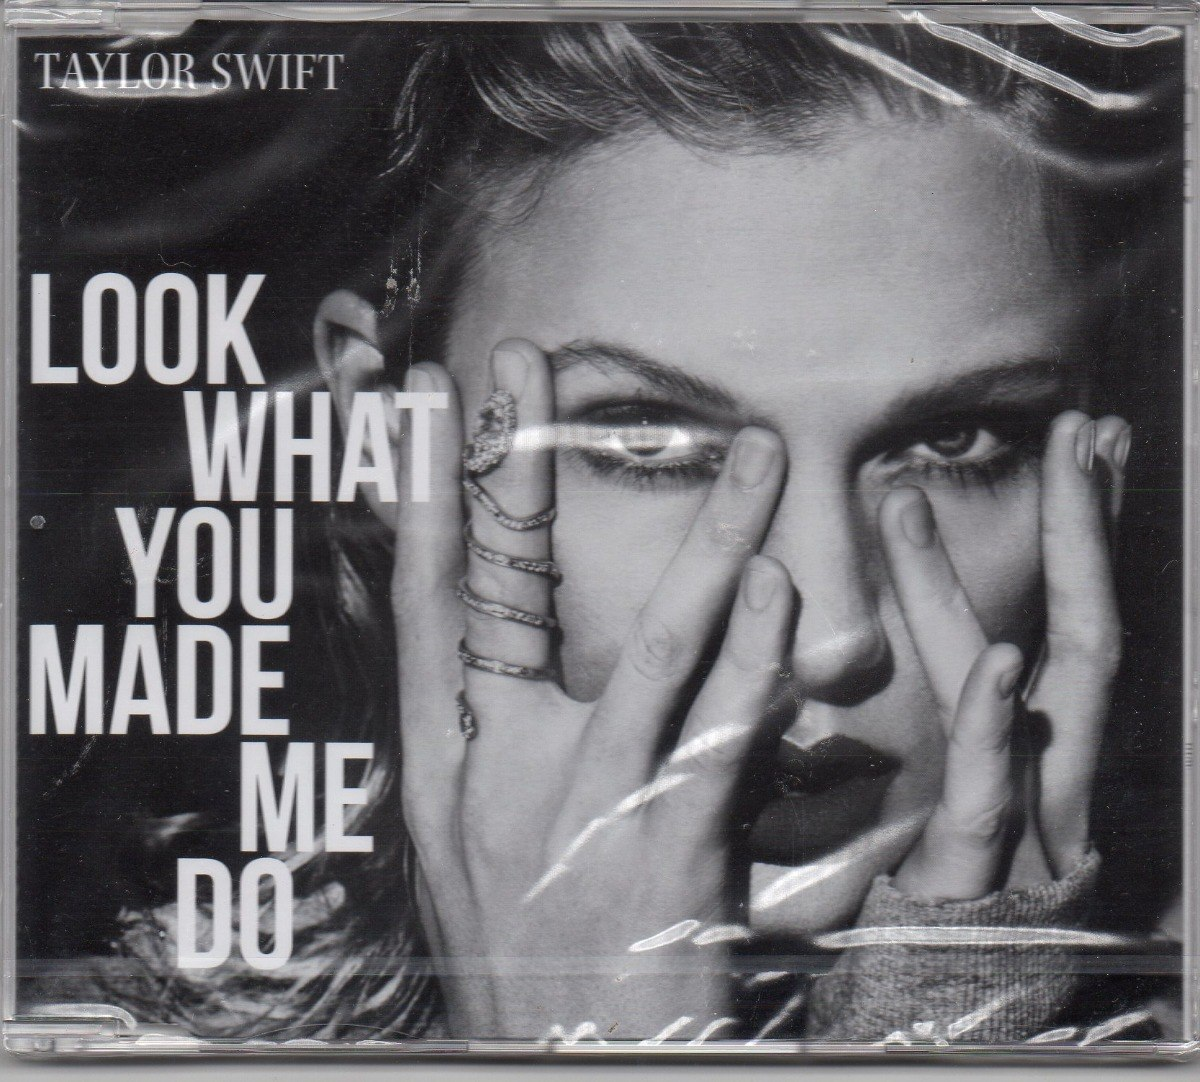 MP3: Taylor Swift - Look What You Made Me Do